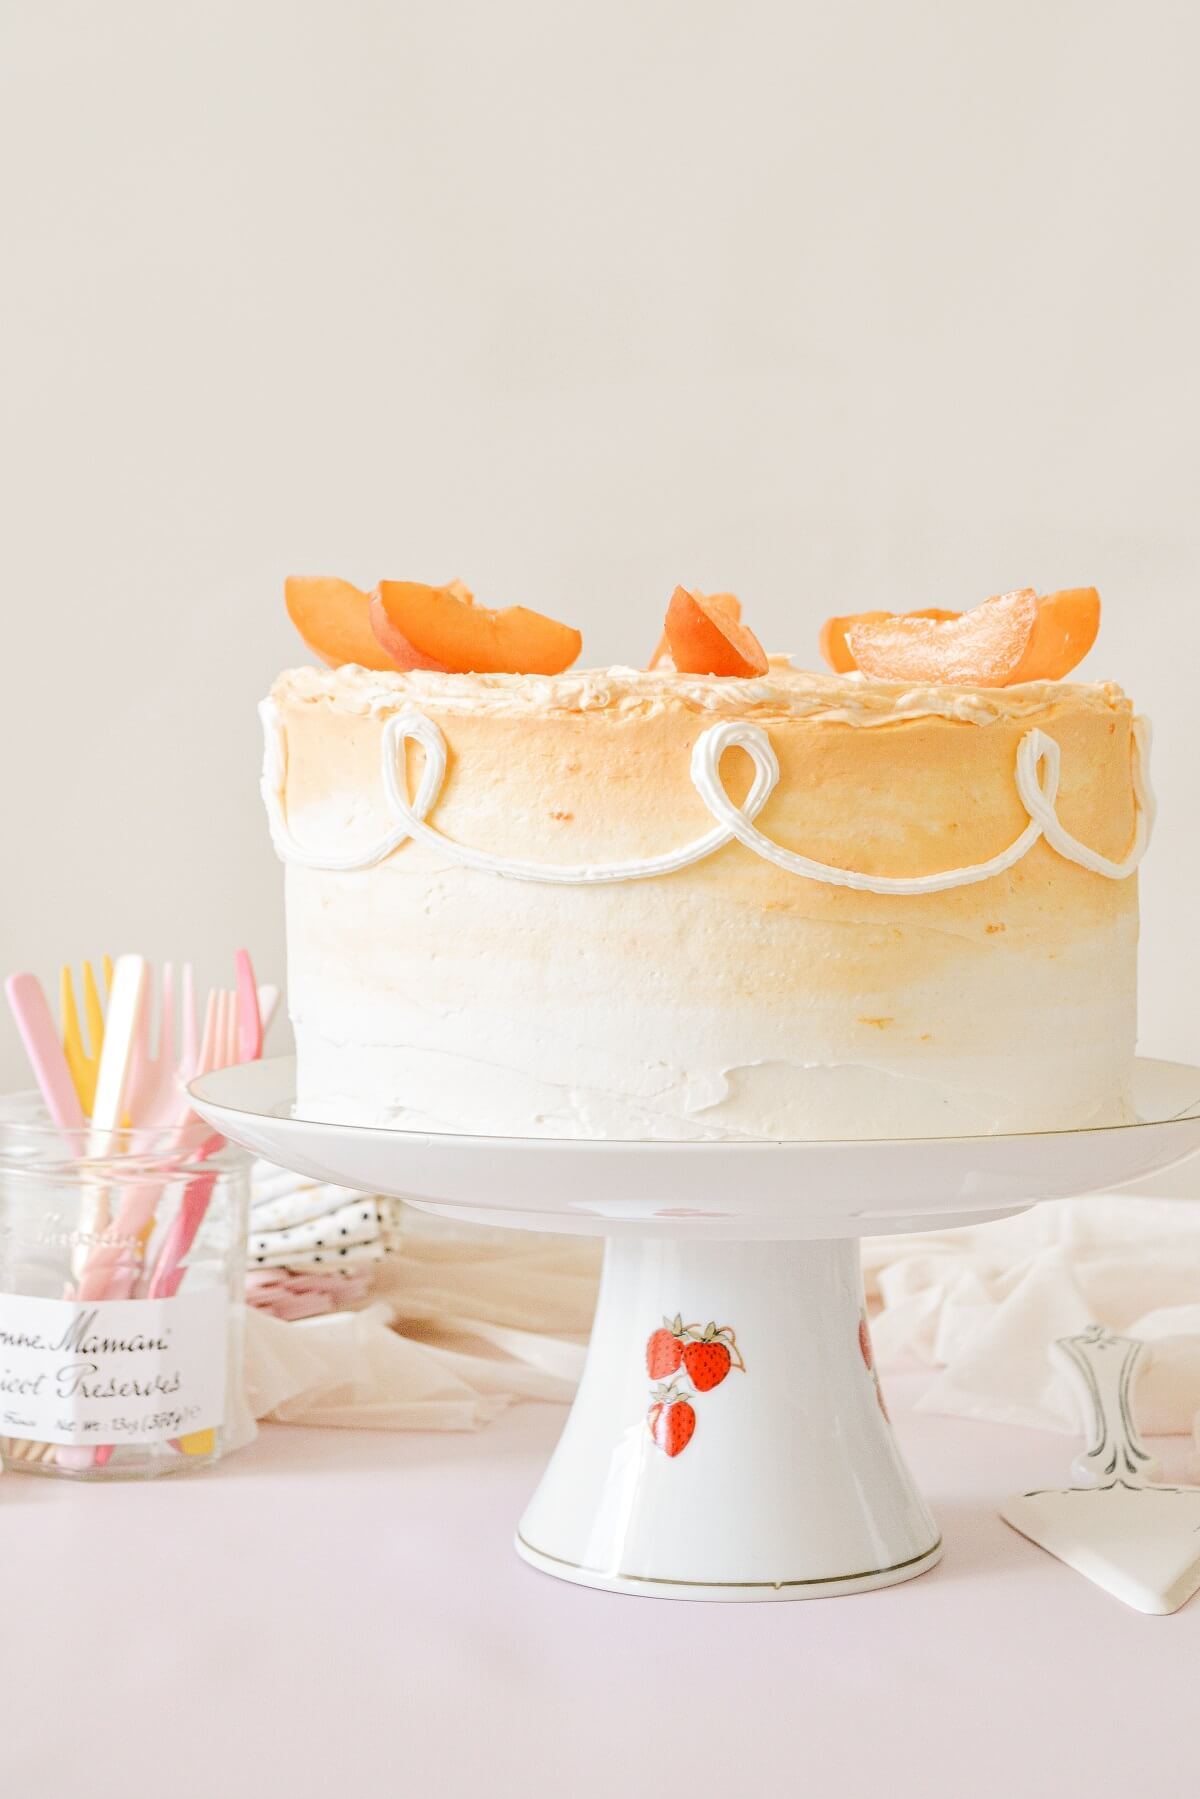 Apricot almond cake, topped with fresh apricot slices.